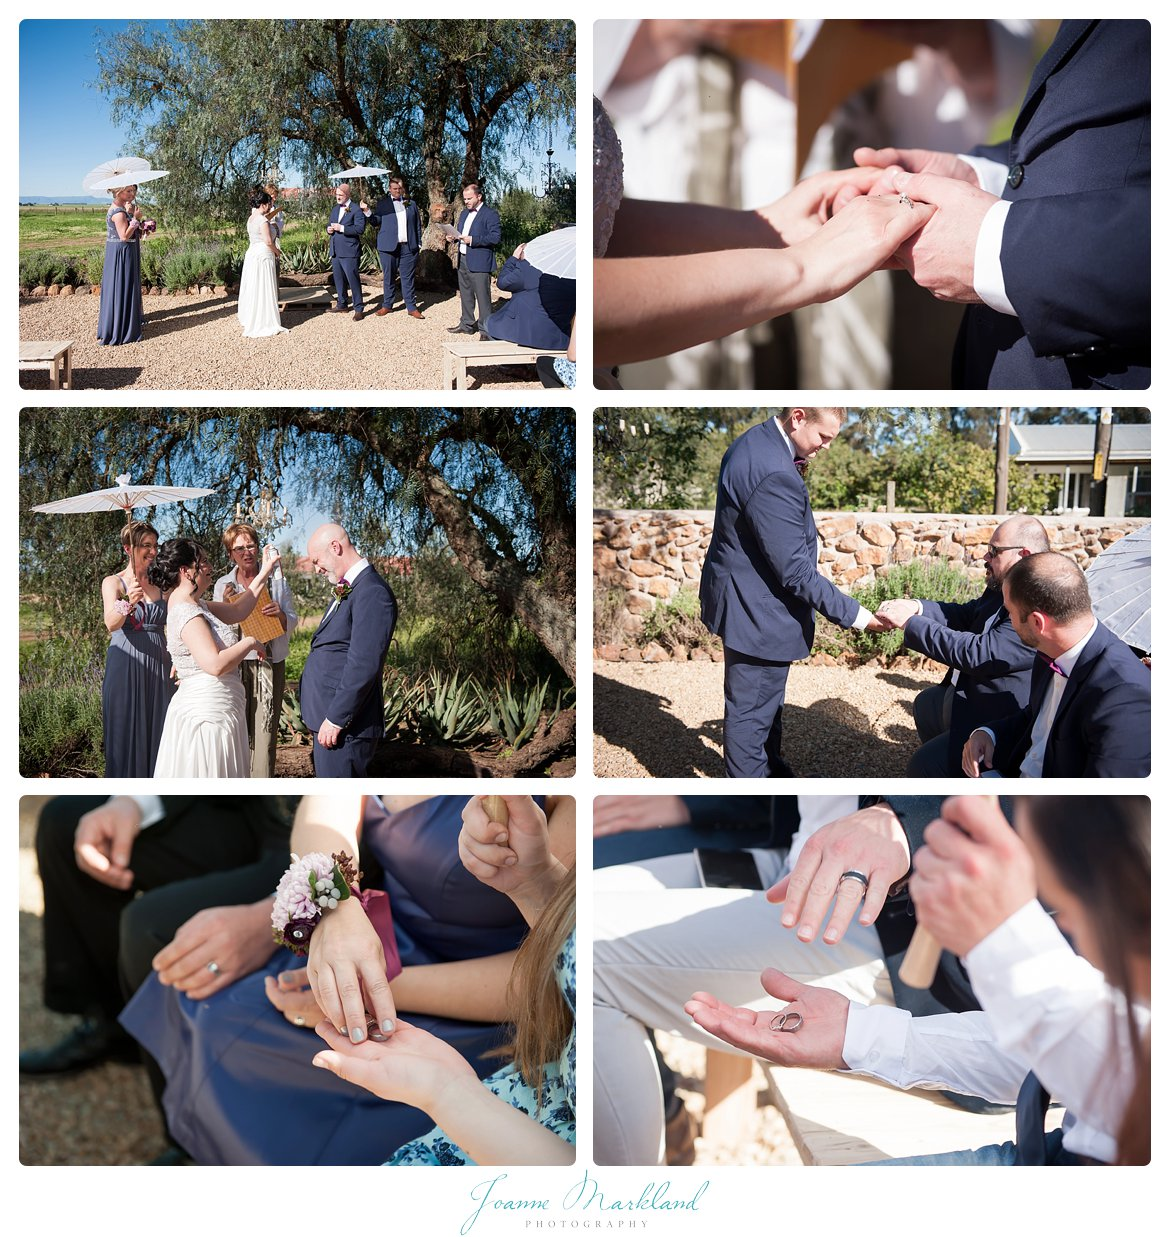 boorwater-wedding-hopefield-west-coast-cape-town-joanne-markland-photography-022